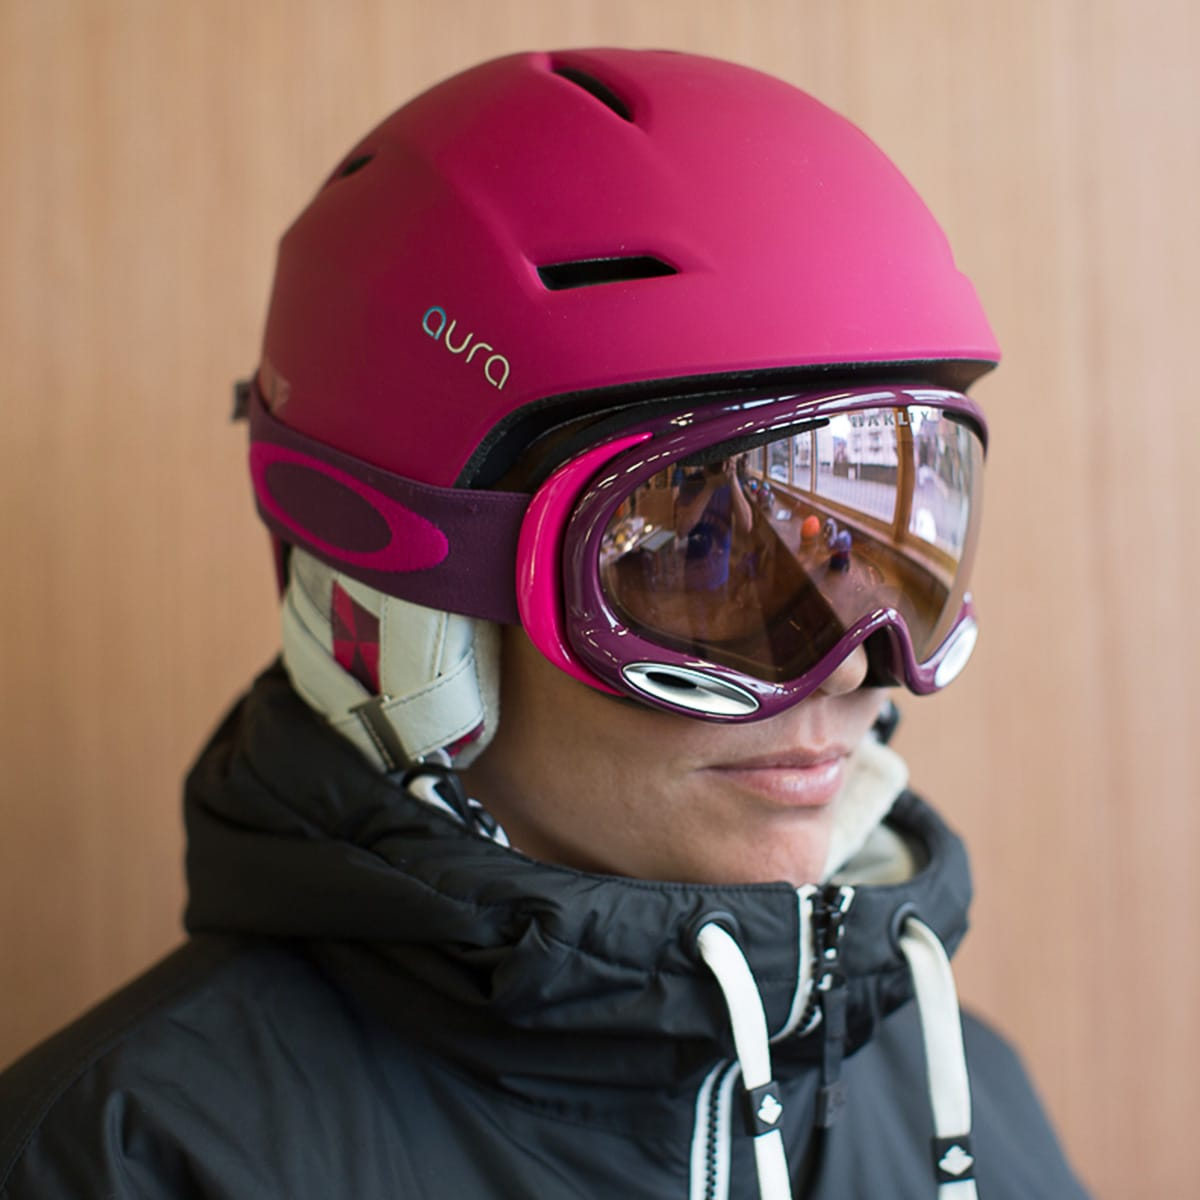 oakley goggles a frame  Are More Expensive Ski Goggles Worth The Extra Cost?Igero